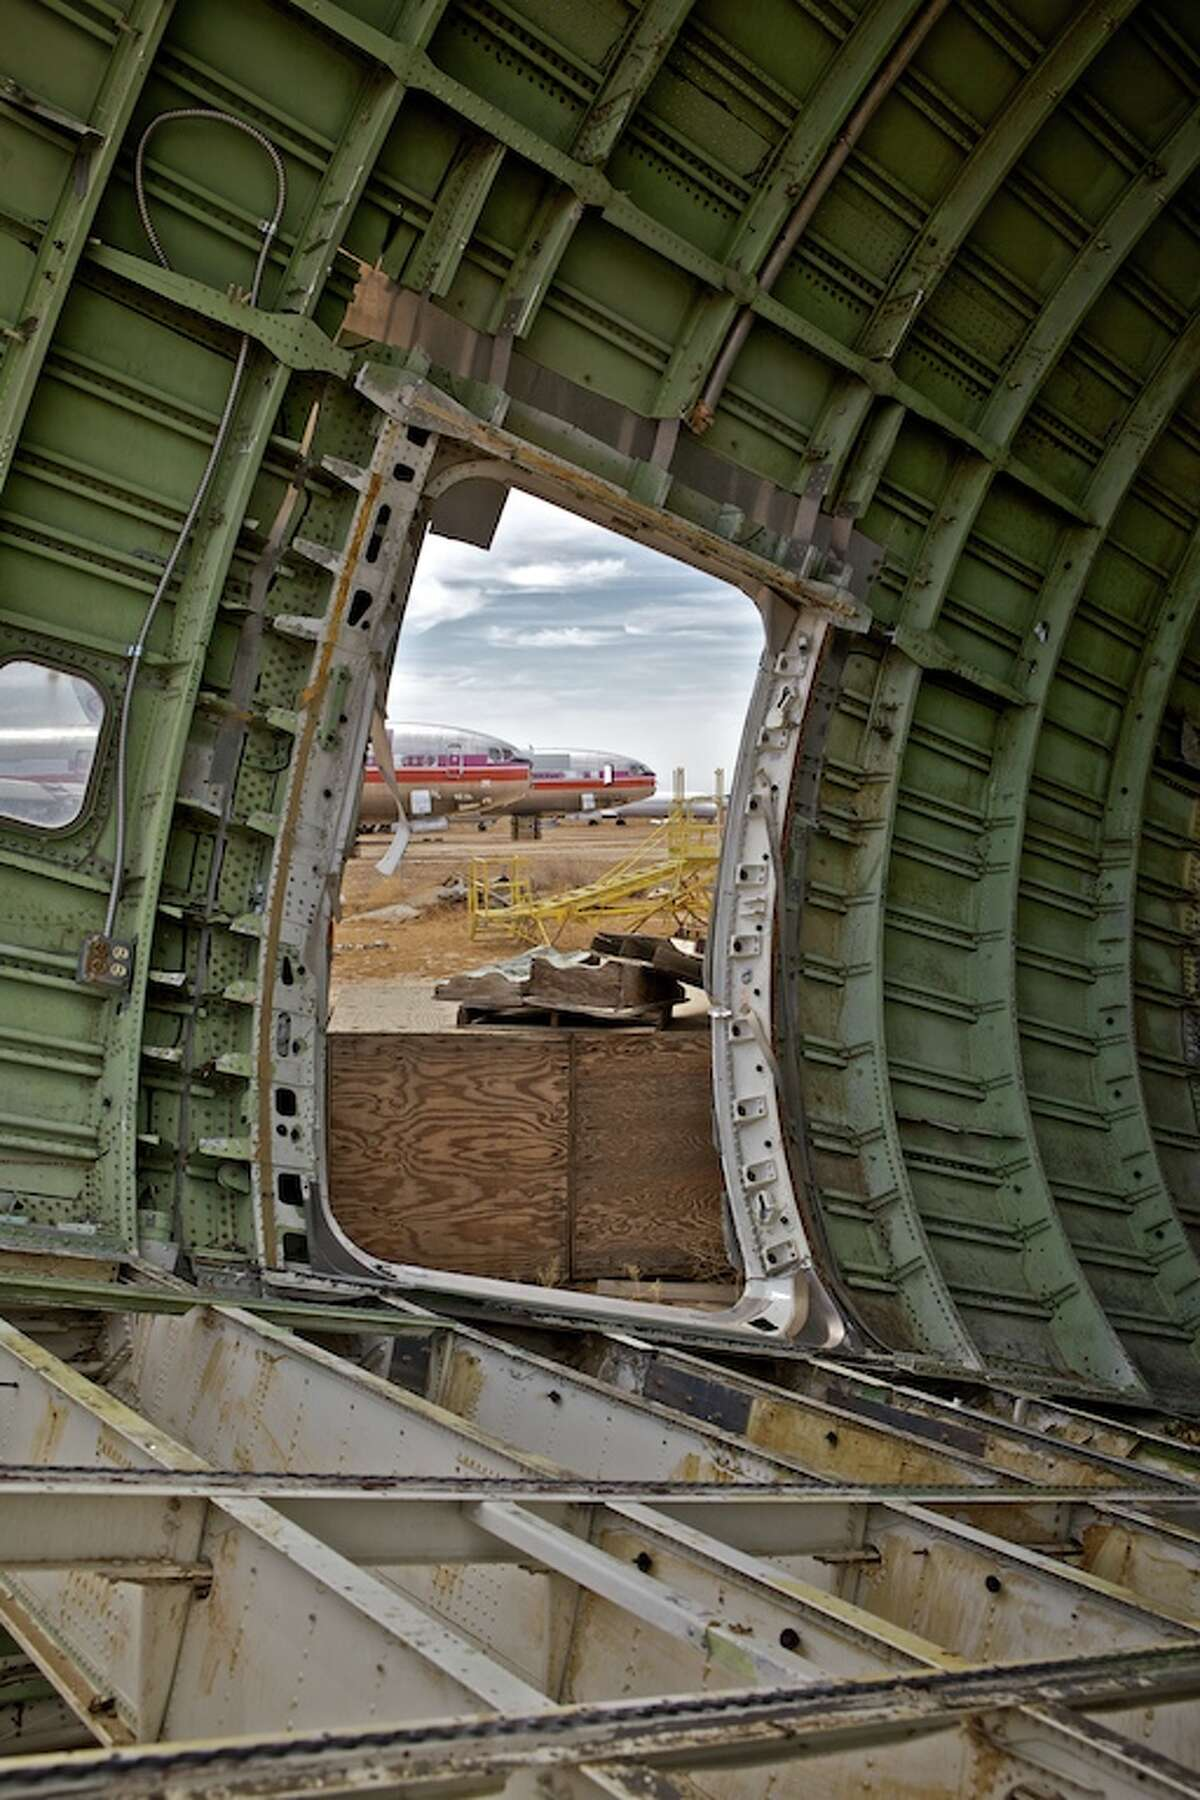 Inside an old airliner at the airplane graveyard near Mojave Air and Space Port, in Mojave, Calif.